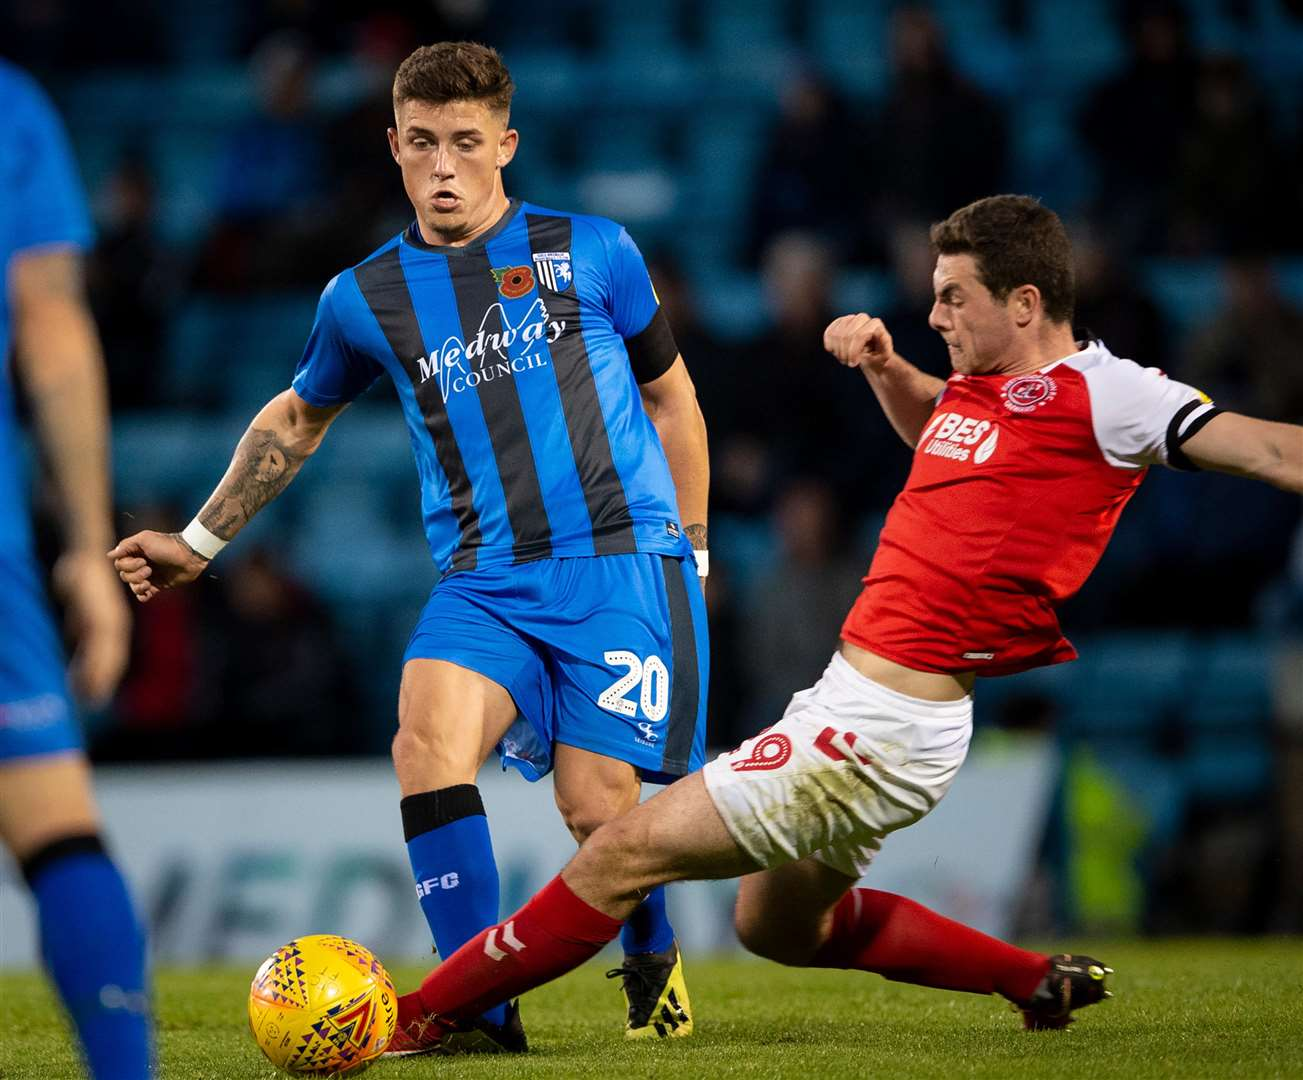 Gillingham's Darren Oldaker takes on Fleetwood's Nathan Sheron Picture: Ady Kerry